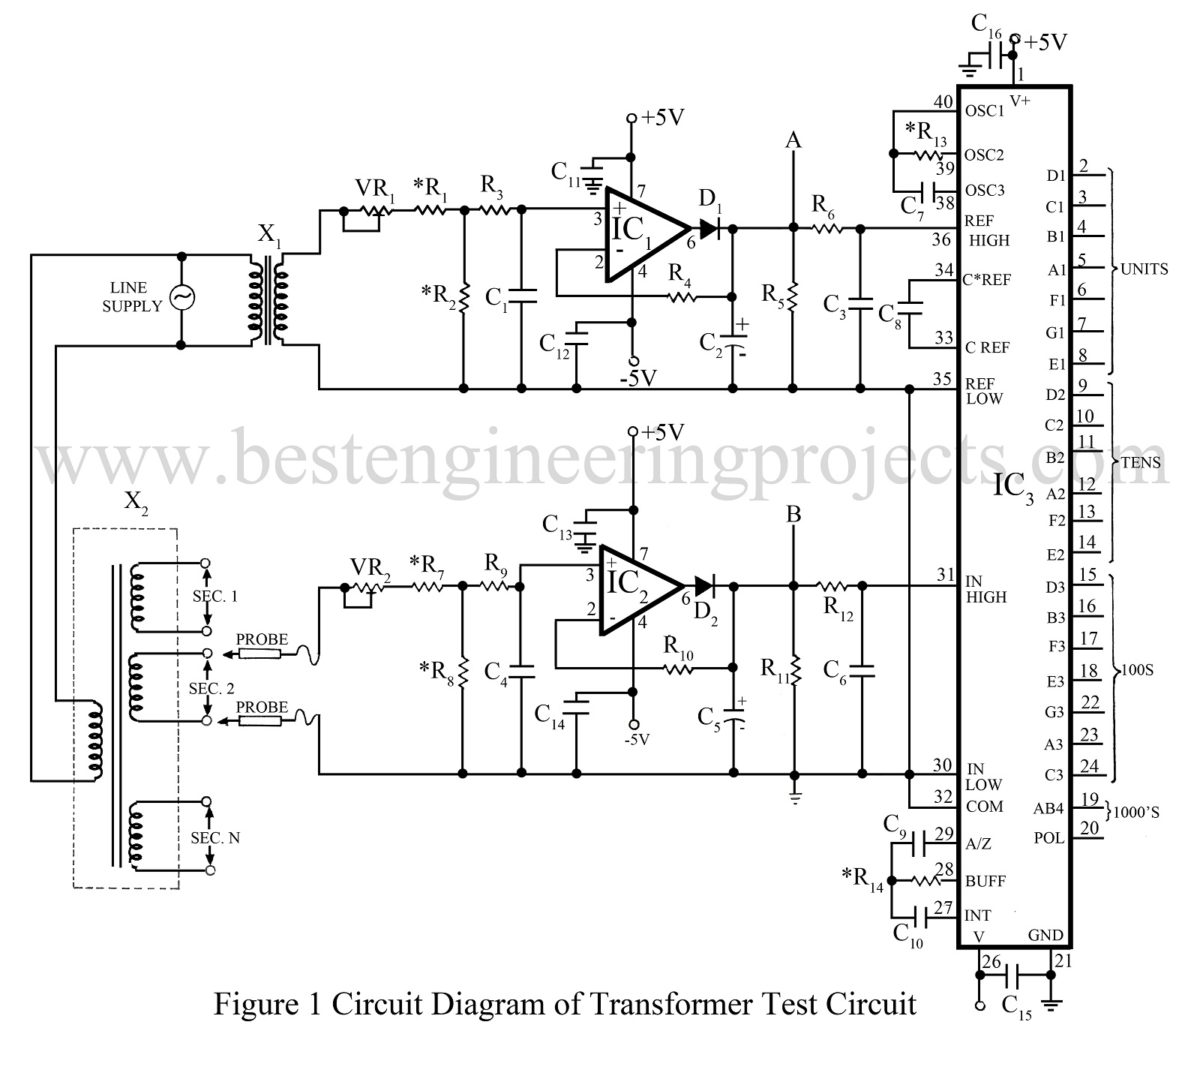 Electronic Measurement And Test Circuit Diagram Transformer To Overcome Line Voltage Variation